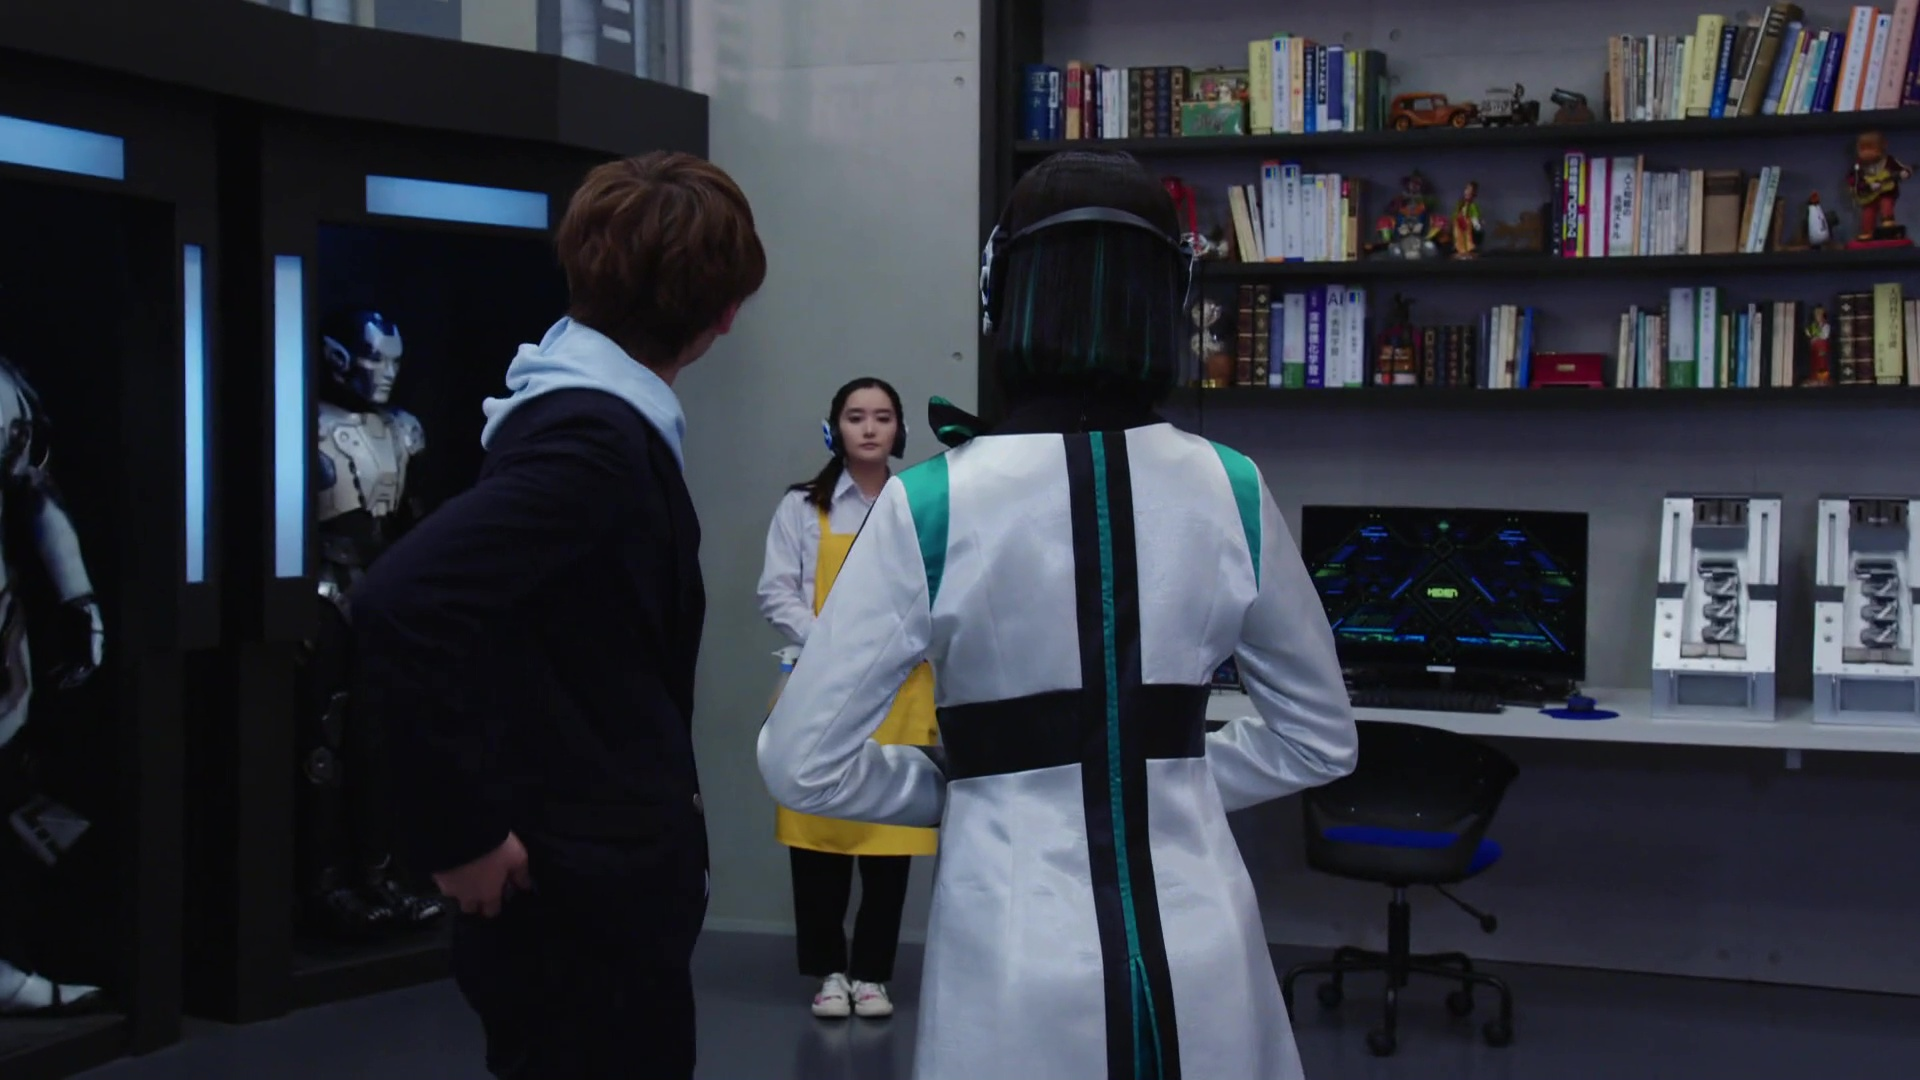 Kamen Rider Zero One Episode 18 Recap